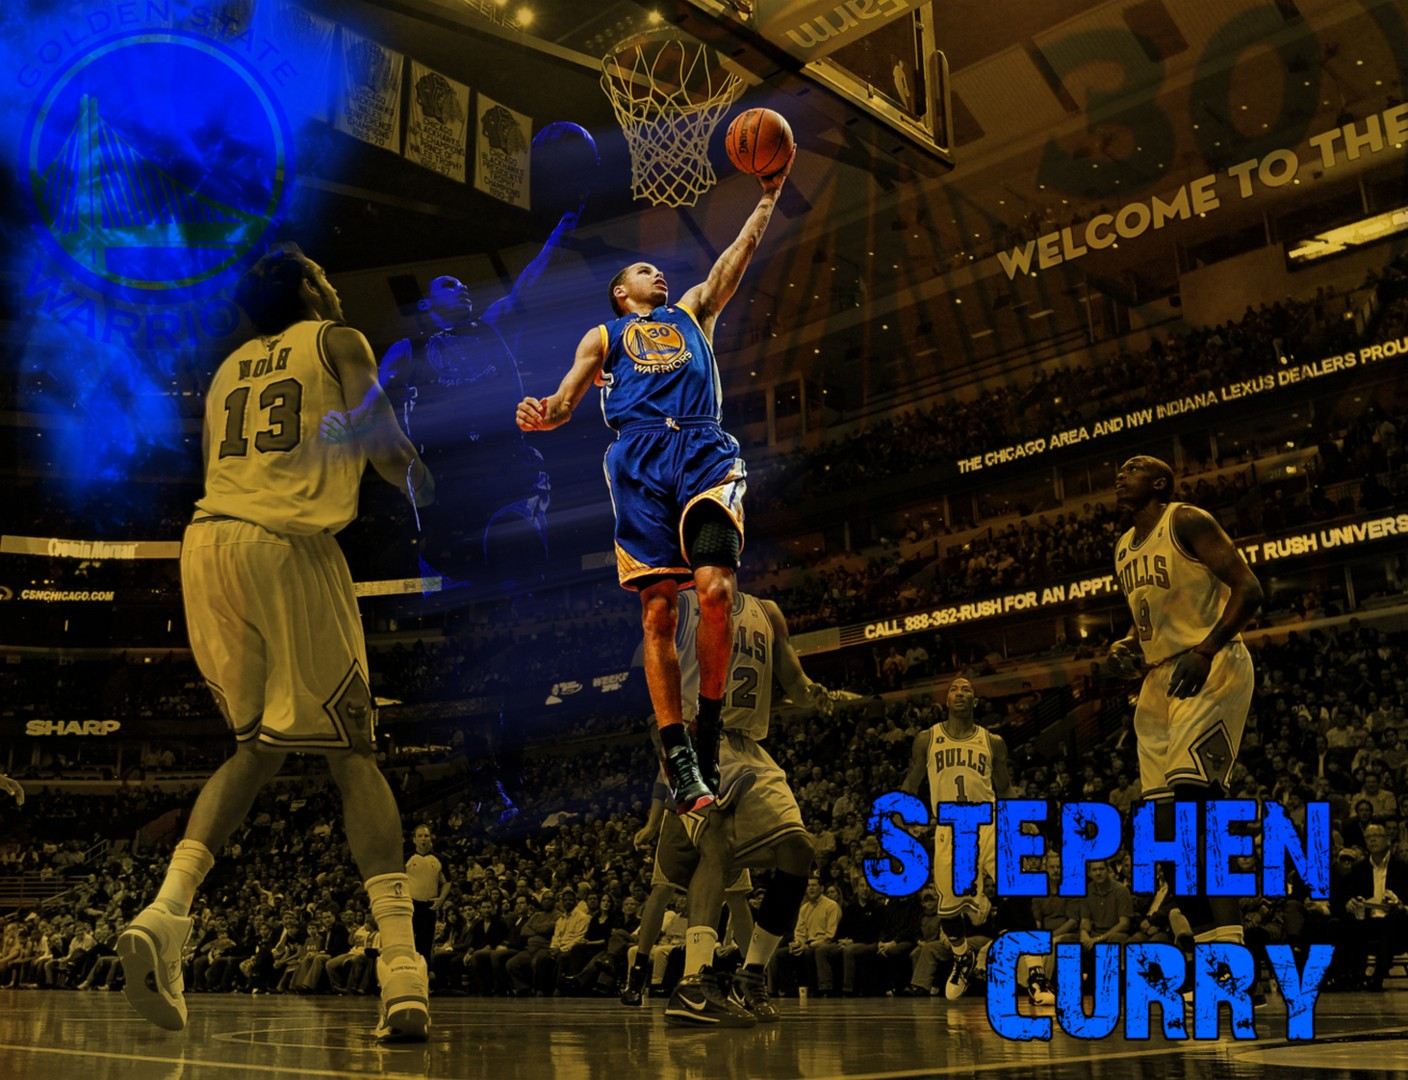 Stephen Curry wallpaper download Wallpapers Backgrounds 1408x1080